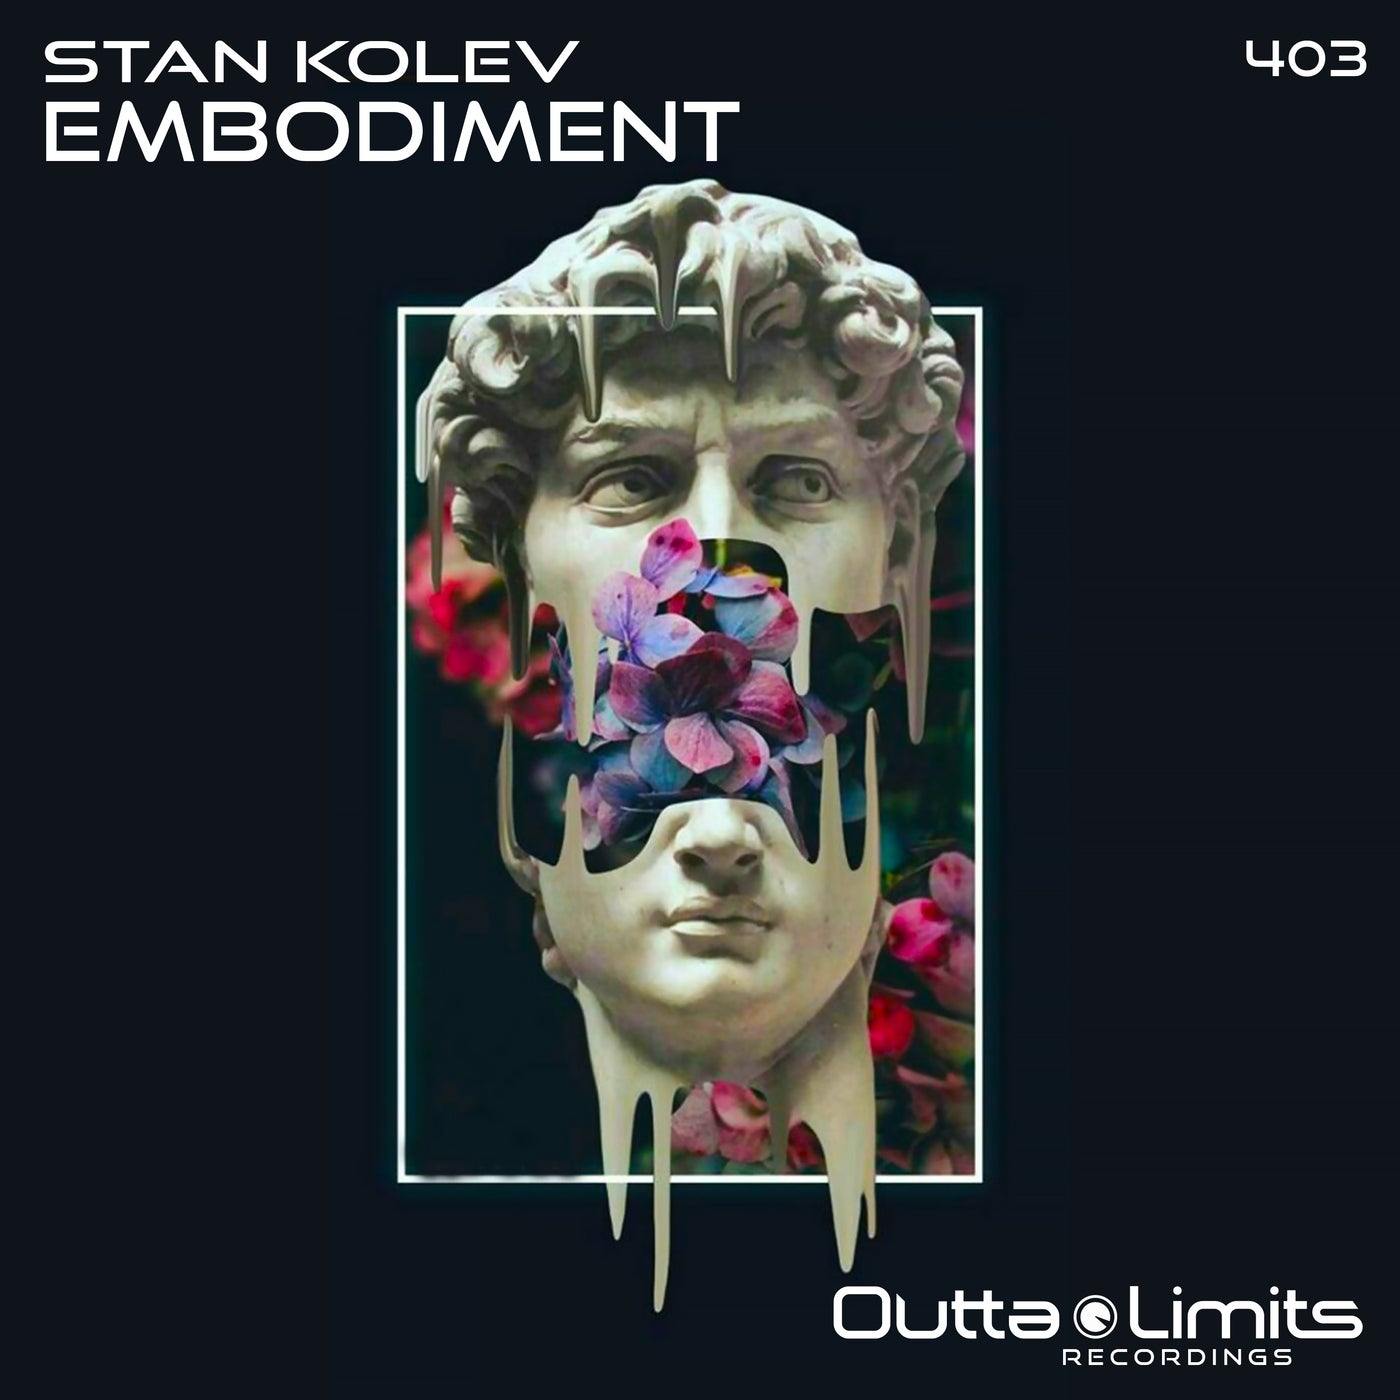 Embodiment (Original Mix)